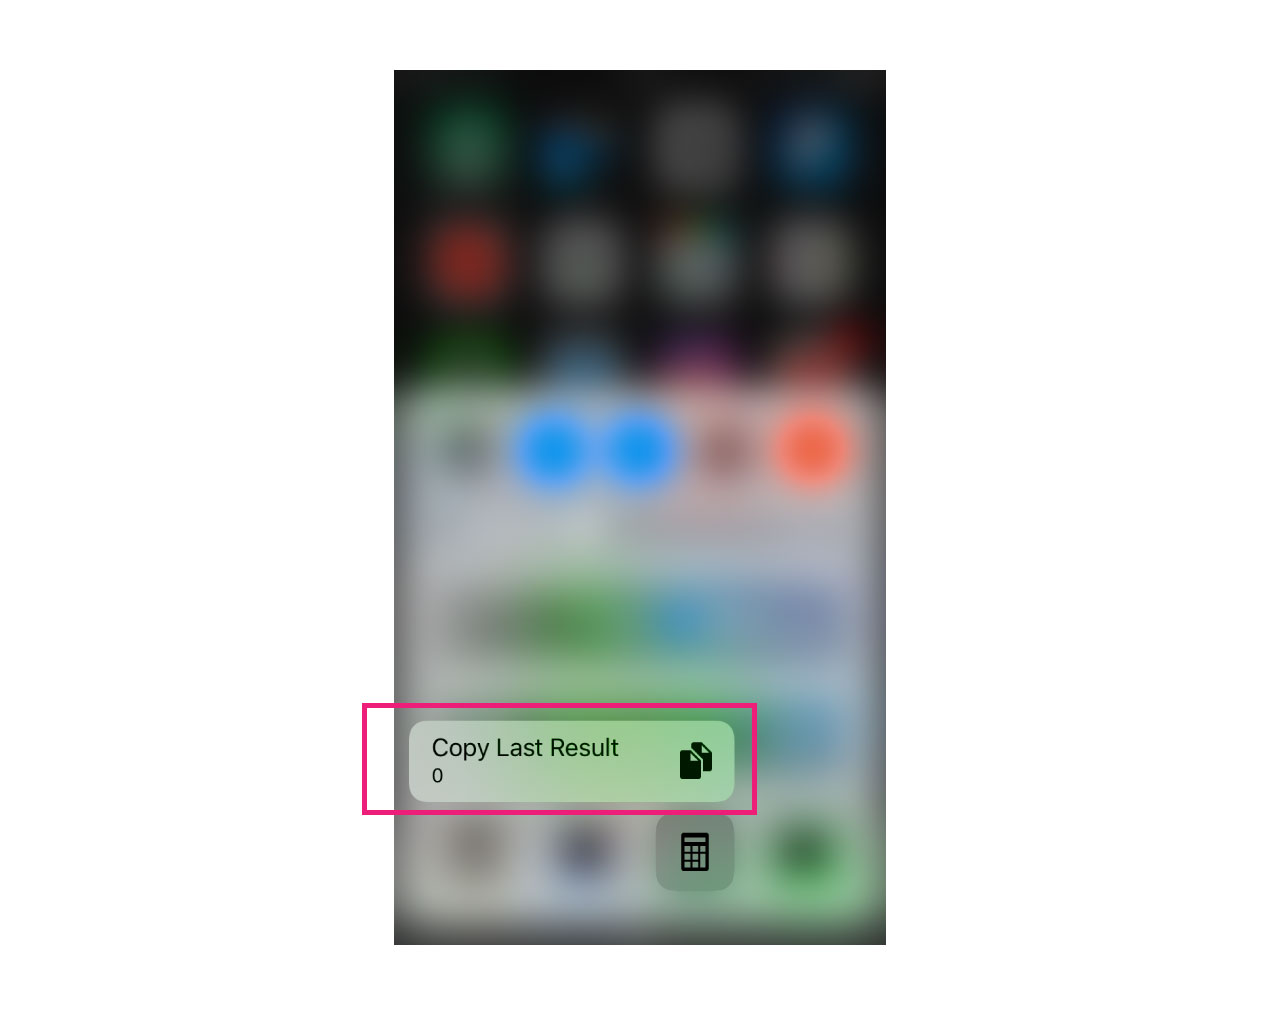 iphone-3dtouch-control-center-3